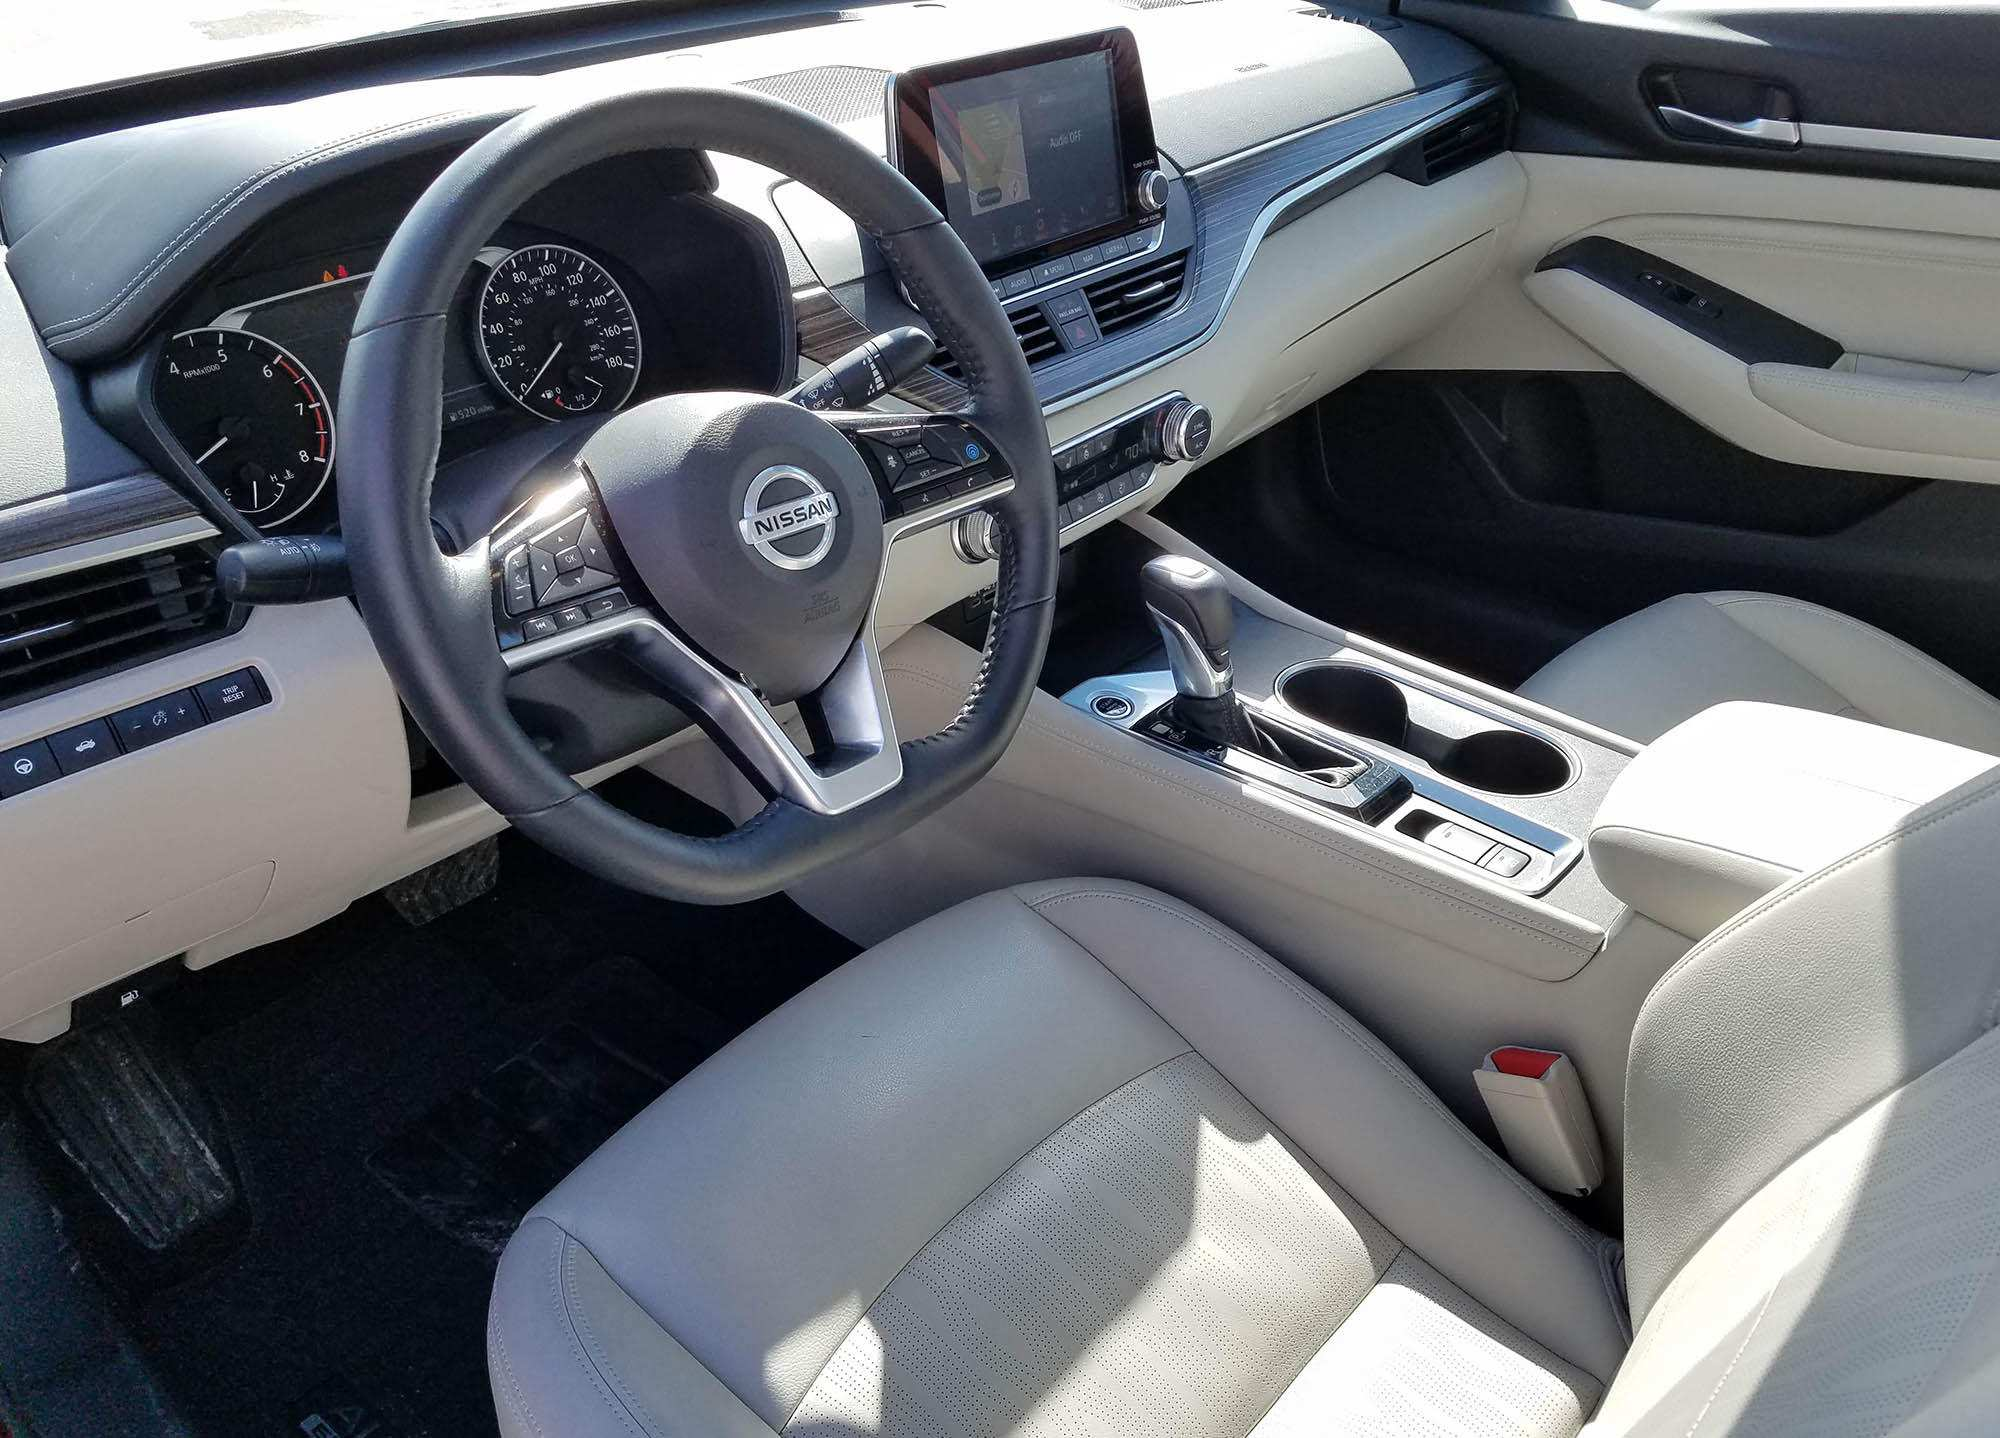 56 Concept of 2019 Nissan Altima Interior New Review for 2019 Nissan Altima Interior